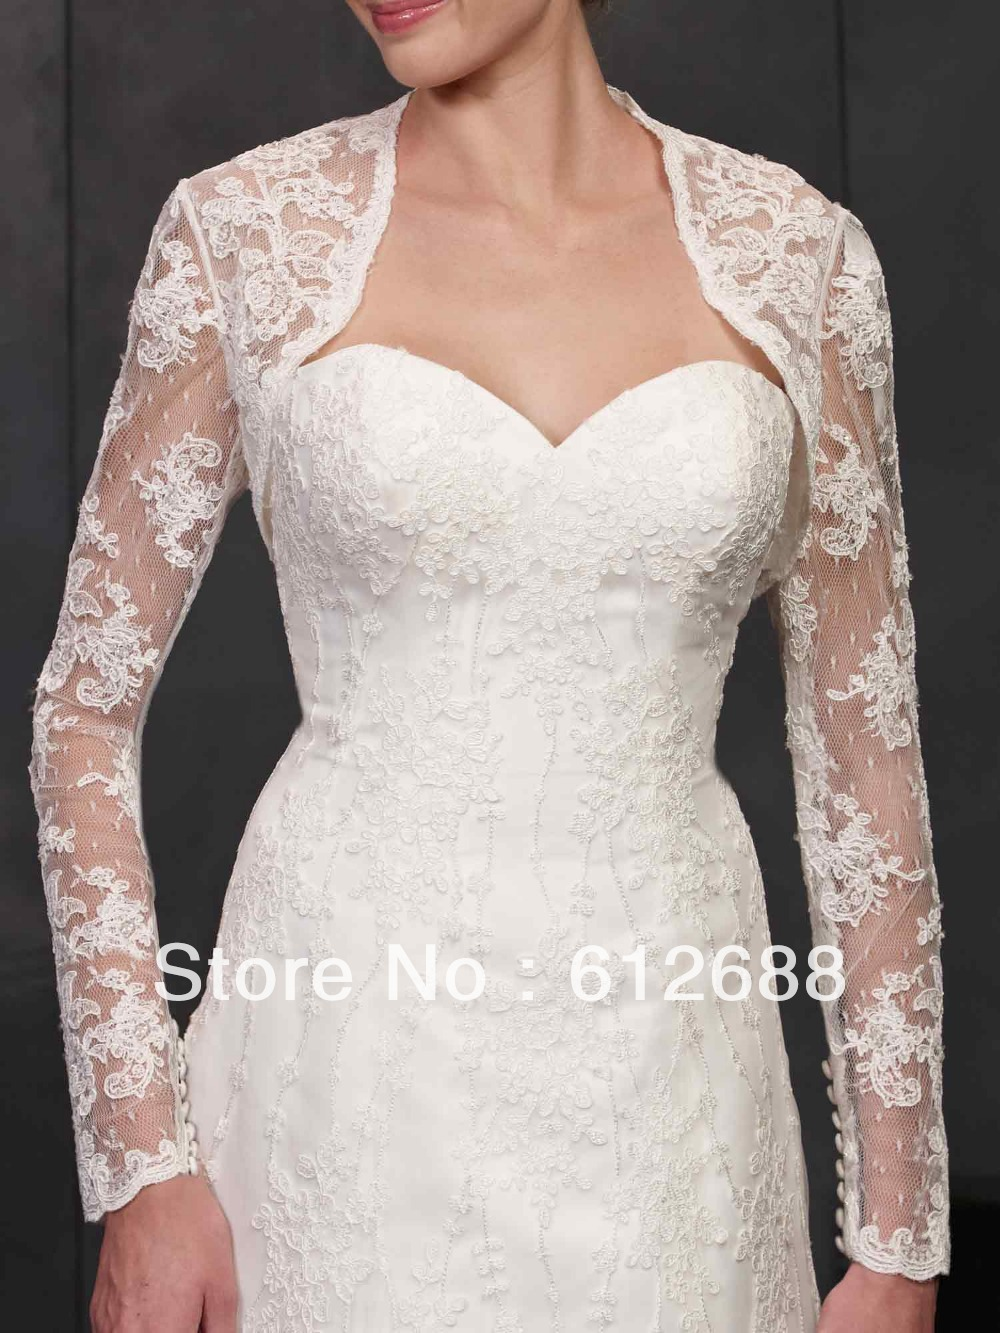 2014 new fashion lace pattern with appliques long sleeve for Wedding dress lace bolero